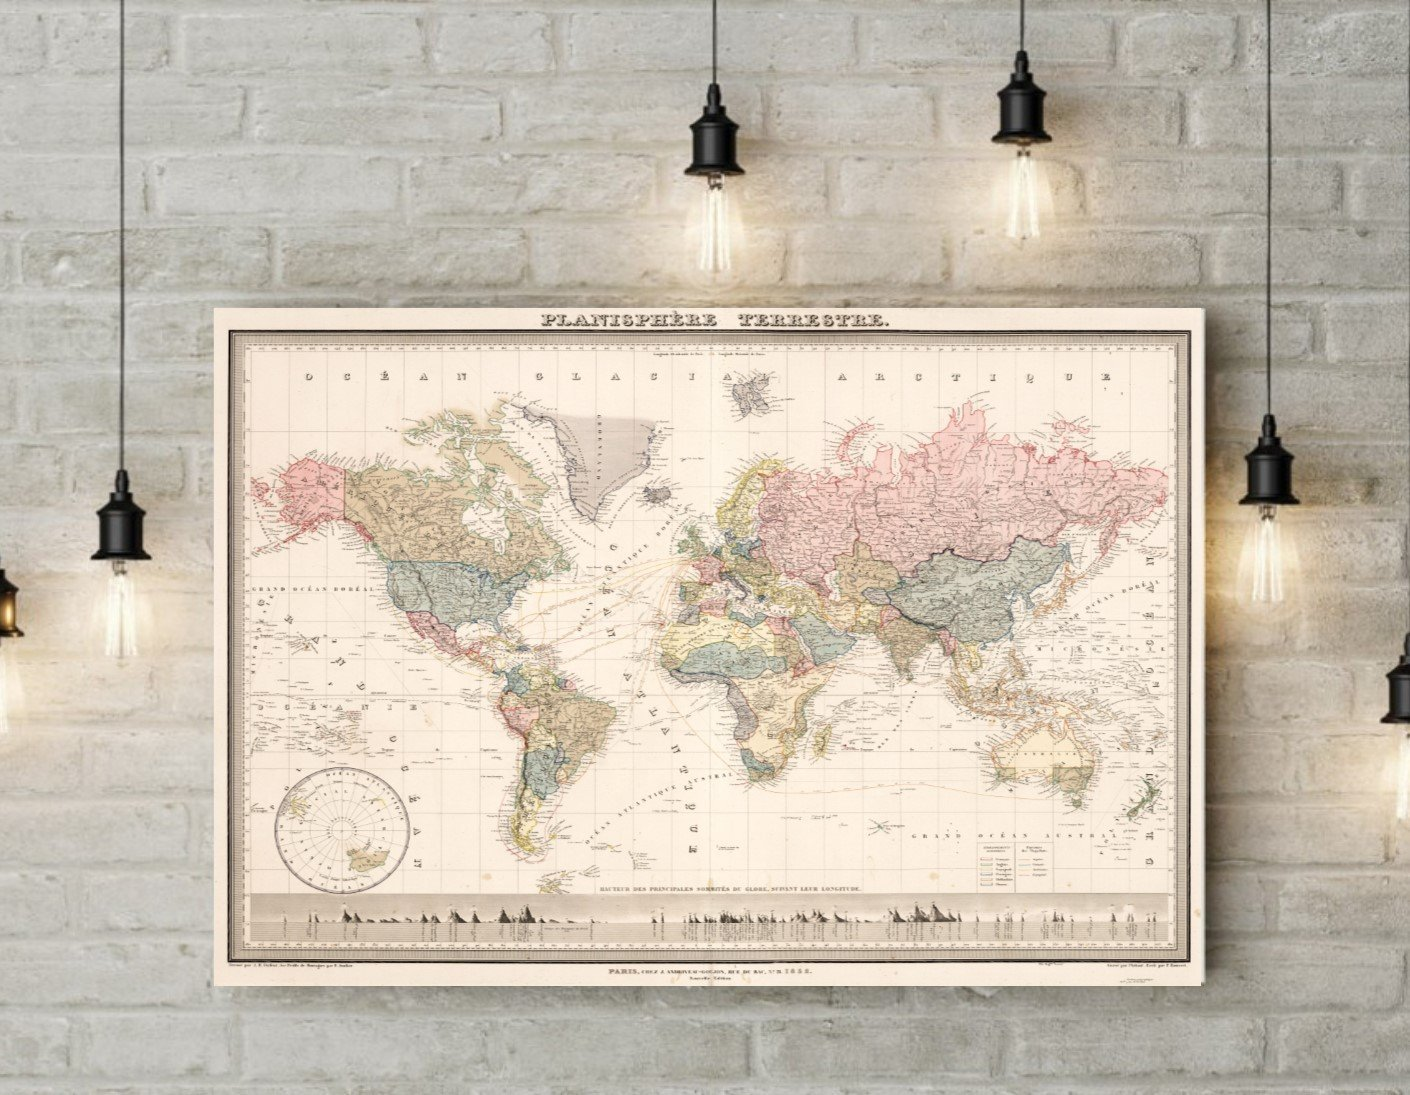 Subway Map Wall Art Wall Art Stickers Wall Decal Huge Underground Tube Map.Cheap World Map Canvas Find World Map Canvas Deals On Line At